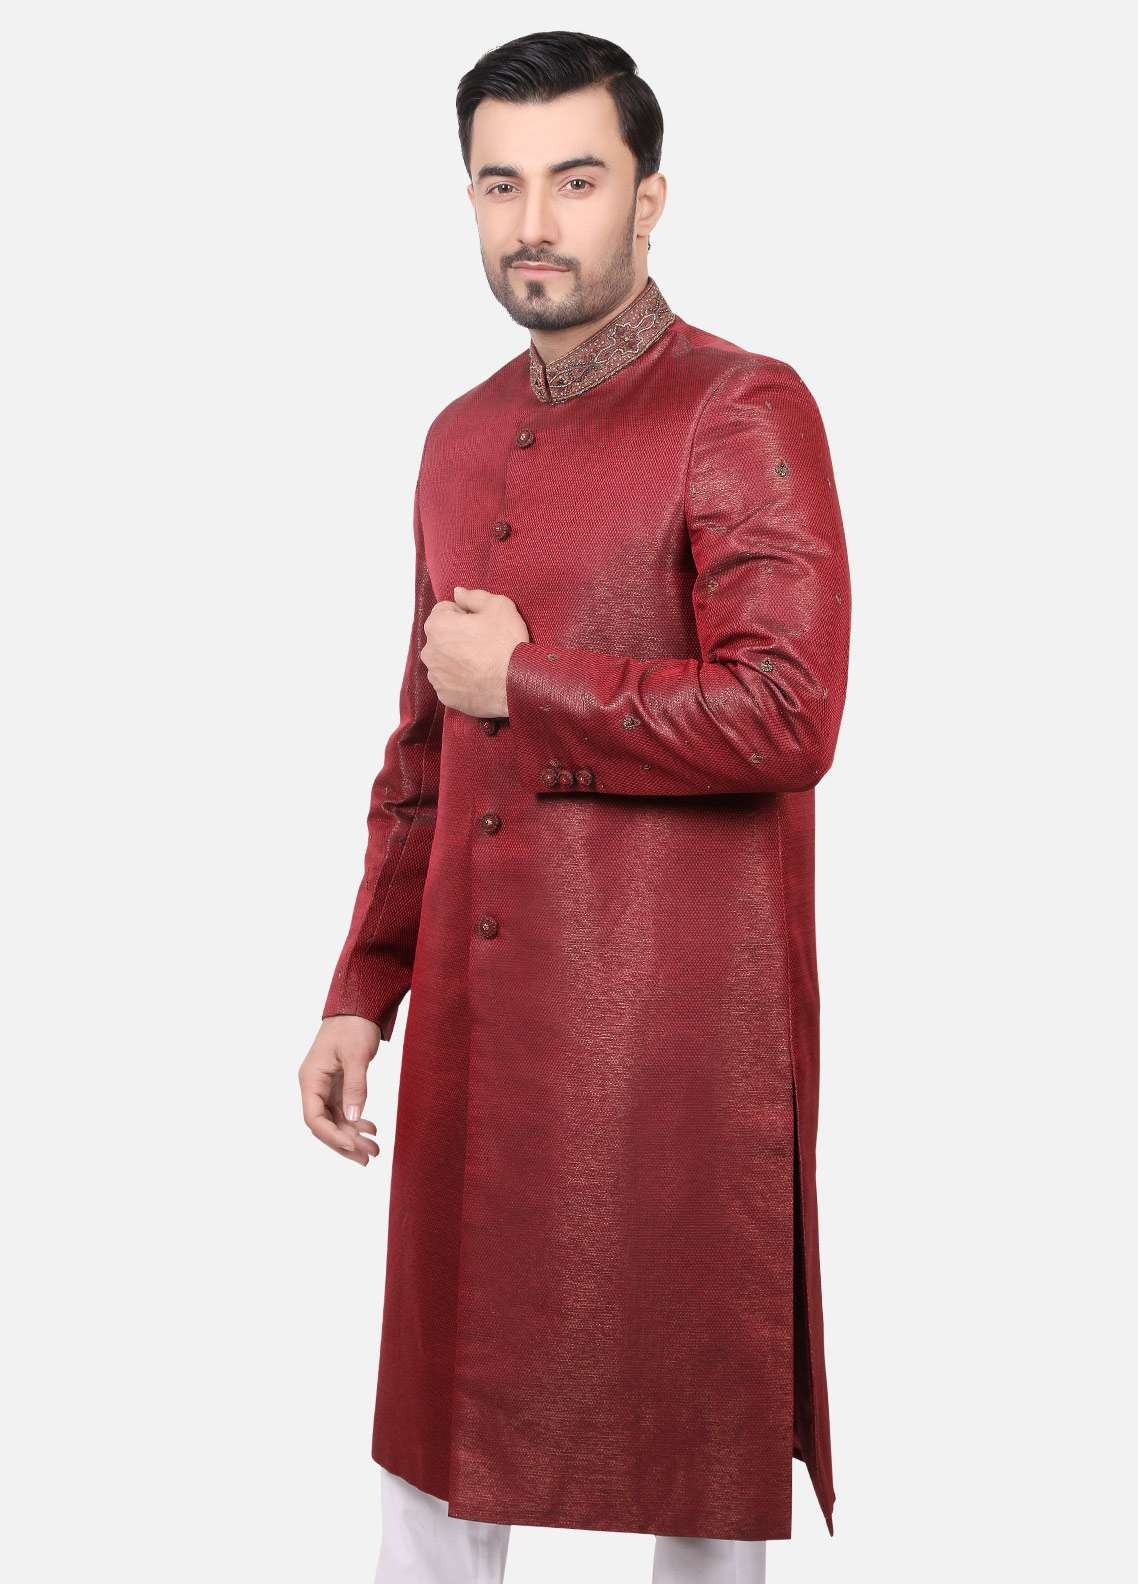 Edenrobe Jamawar Embroidered Men Sherwanis - Red EDM18SH 7132